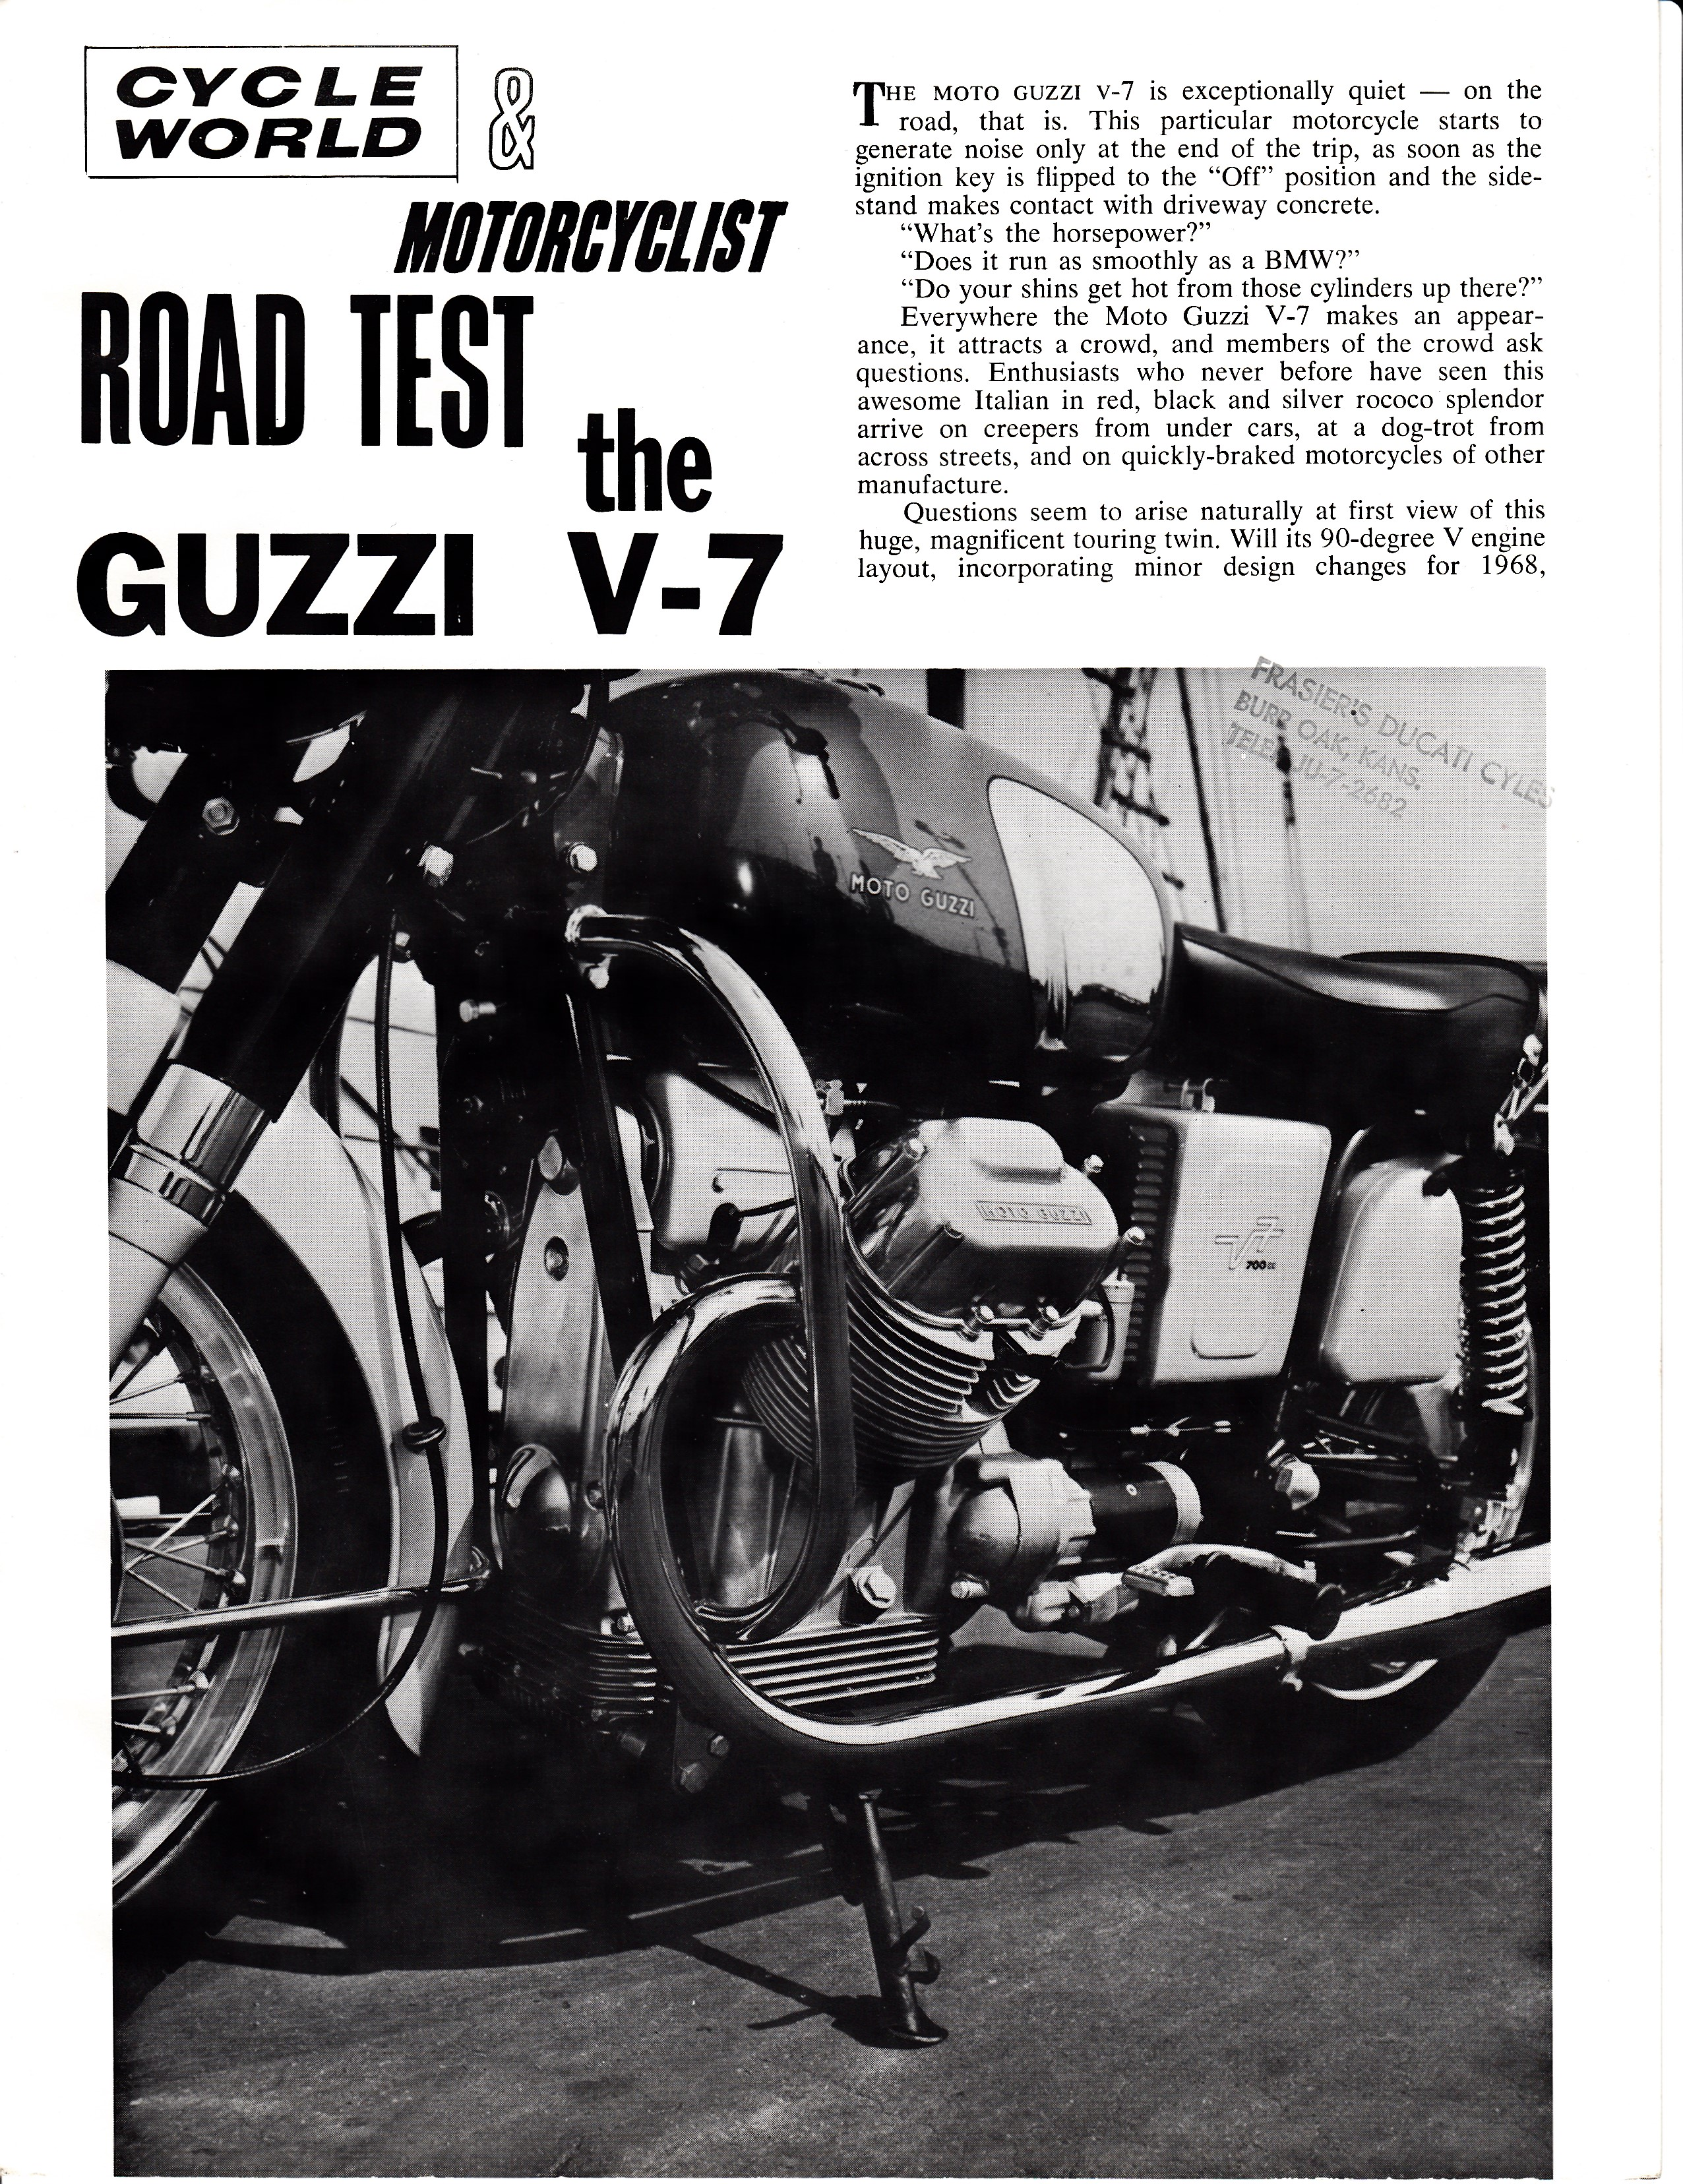 Moto Guzzi V700 factory brochure of magazine reviews, Page 1 of 8.